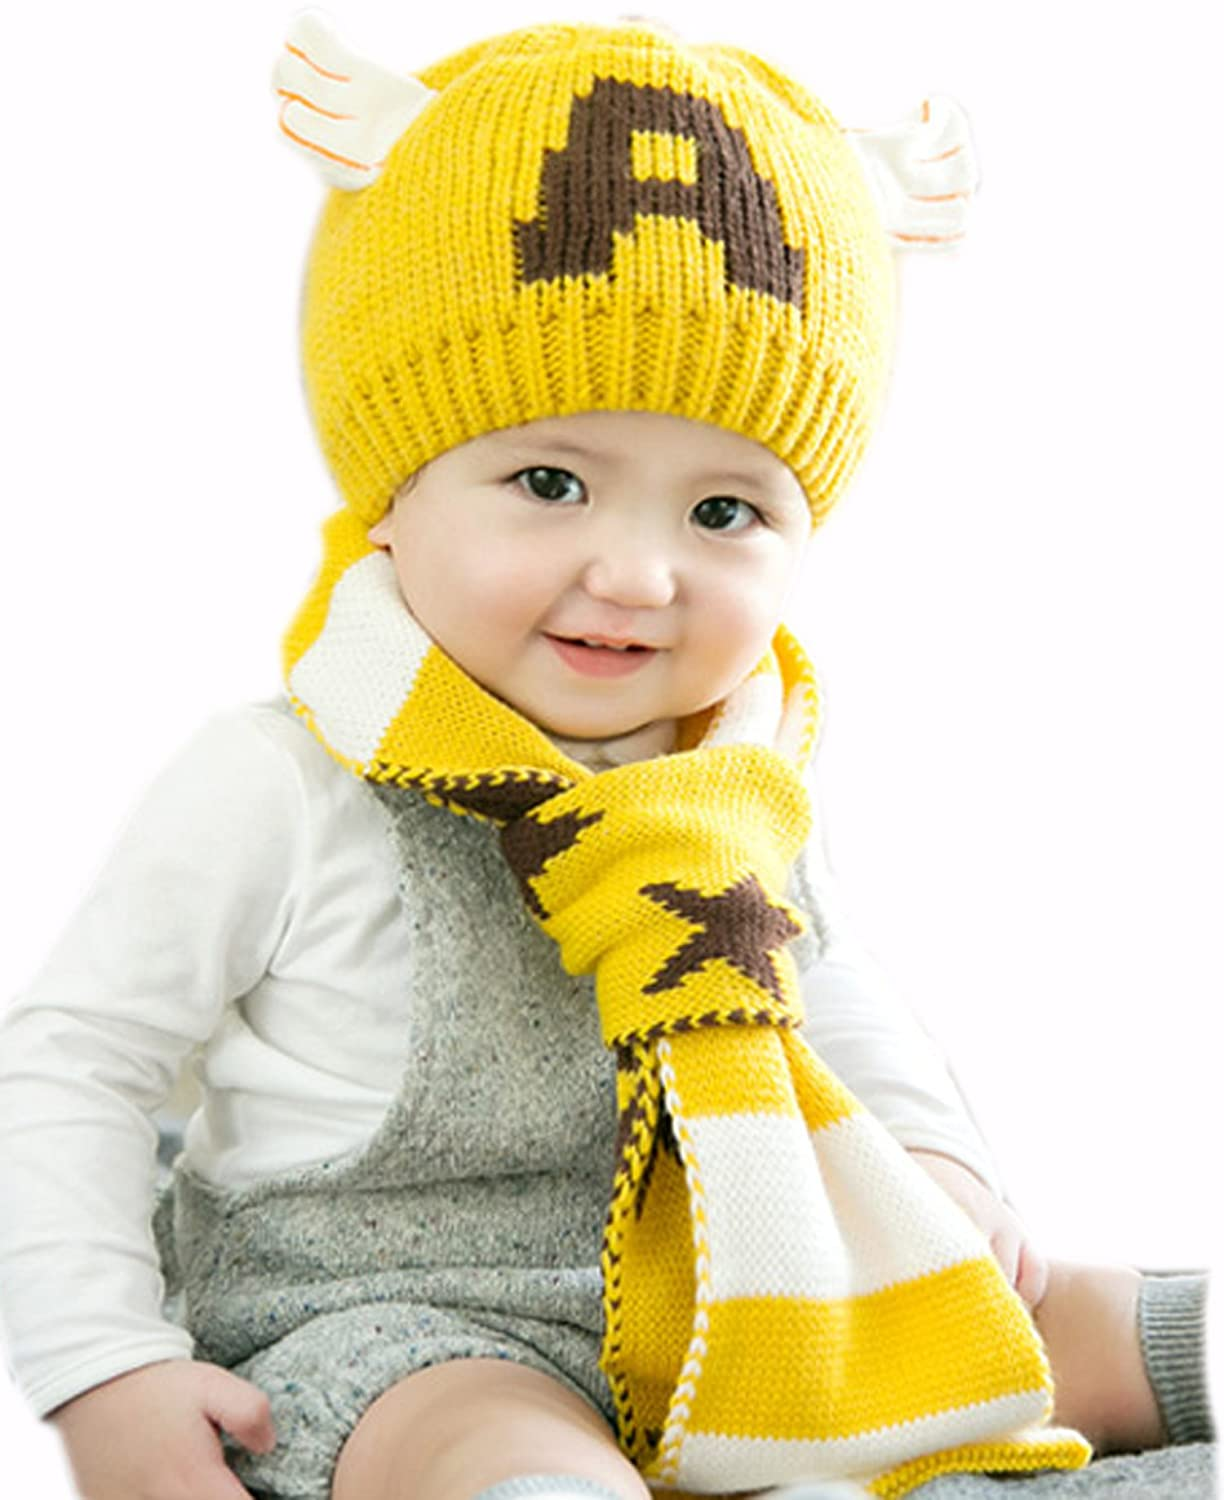 GZMM Baby Kint Hat and Scarf Unisex Infant Toddler 6-24 Months PGZMM10-13